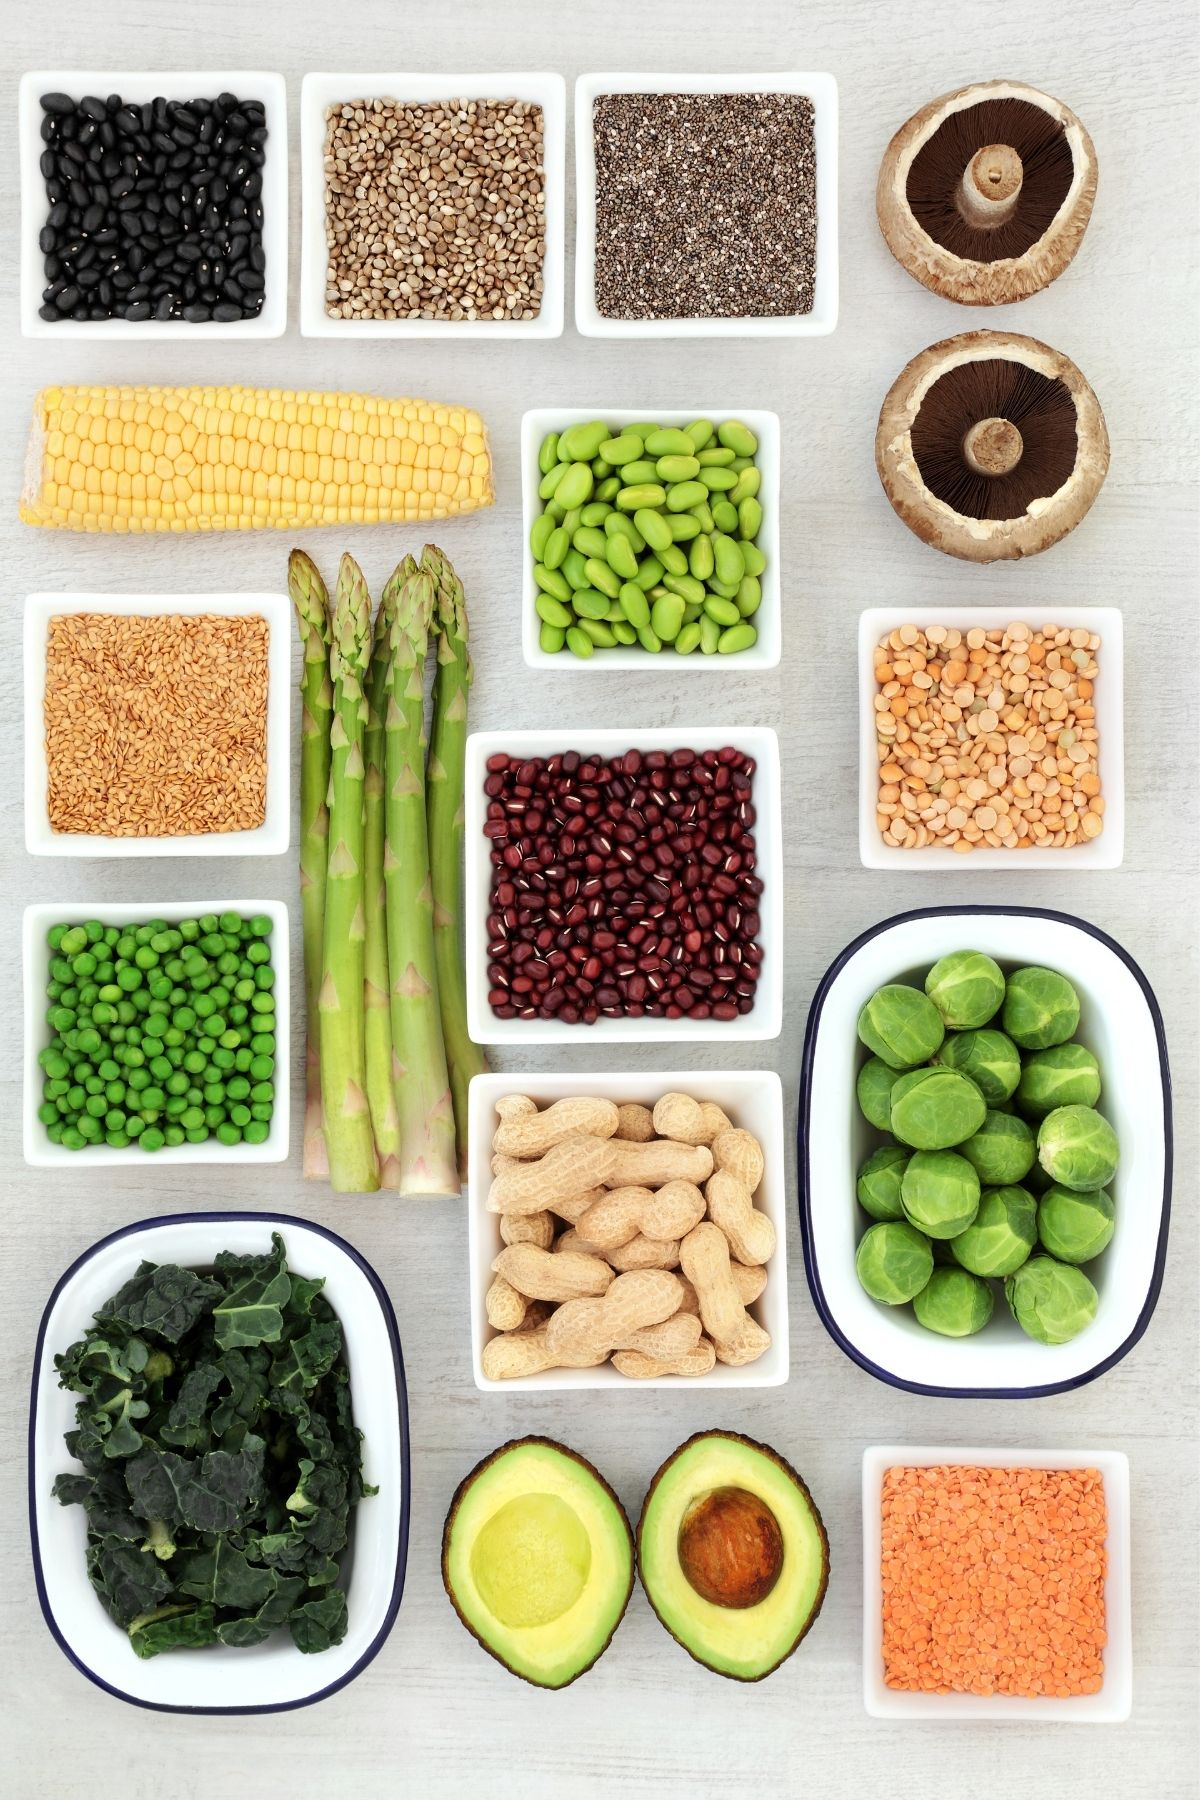 assortment of plant based foods on a table